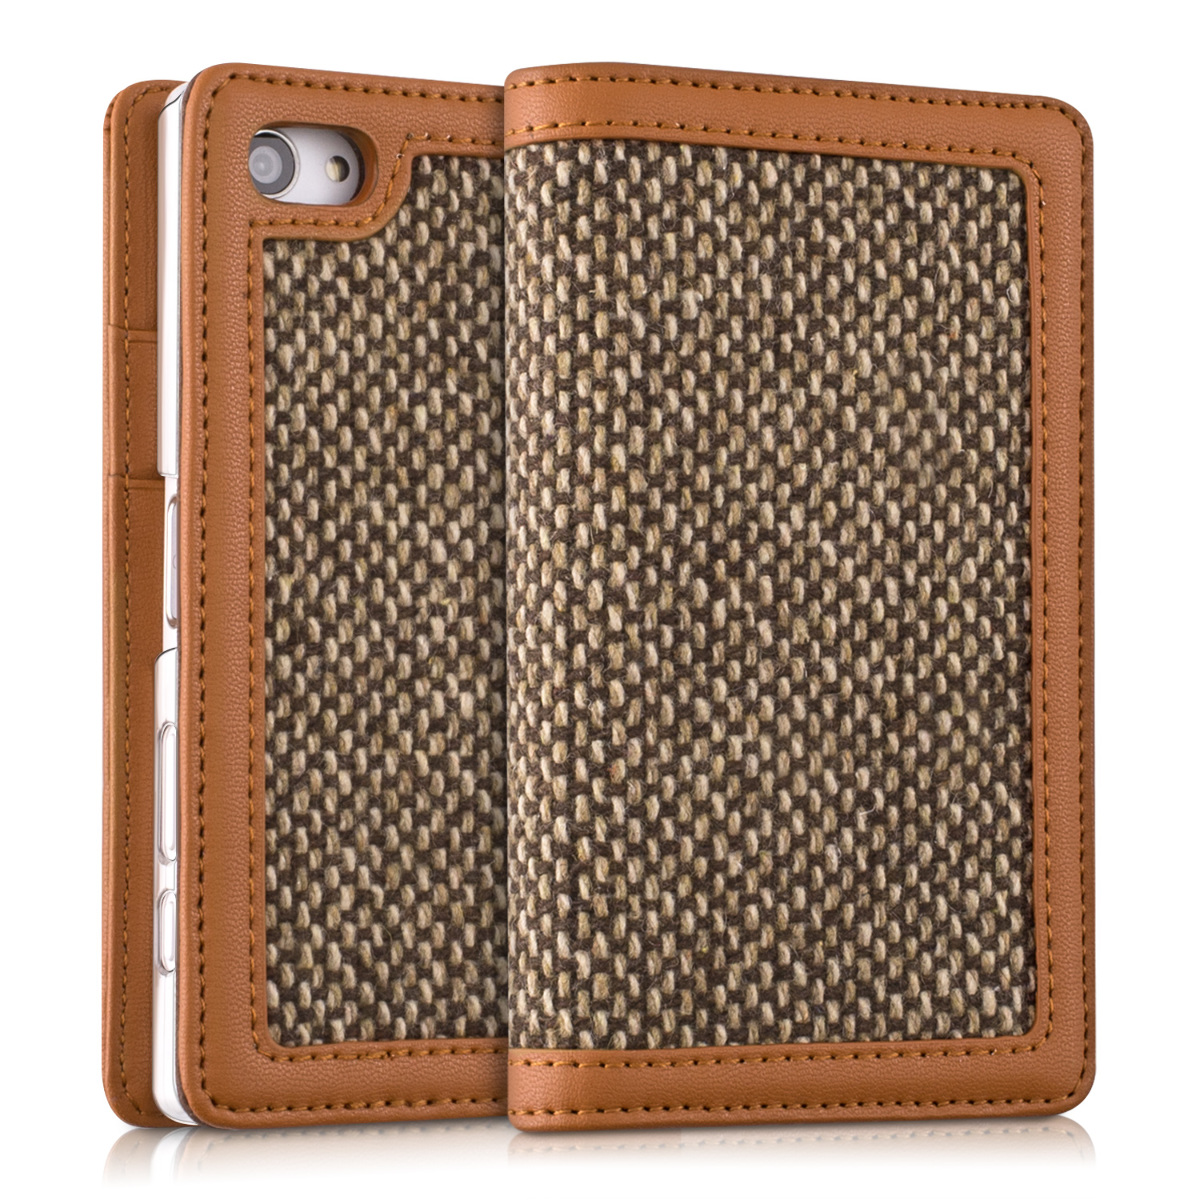 HÜLLE WALLET KUNSTLEDER STYLE DONNA FÜR SONY XPERIA Z5 COMPACT COVER FLIP TWEED